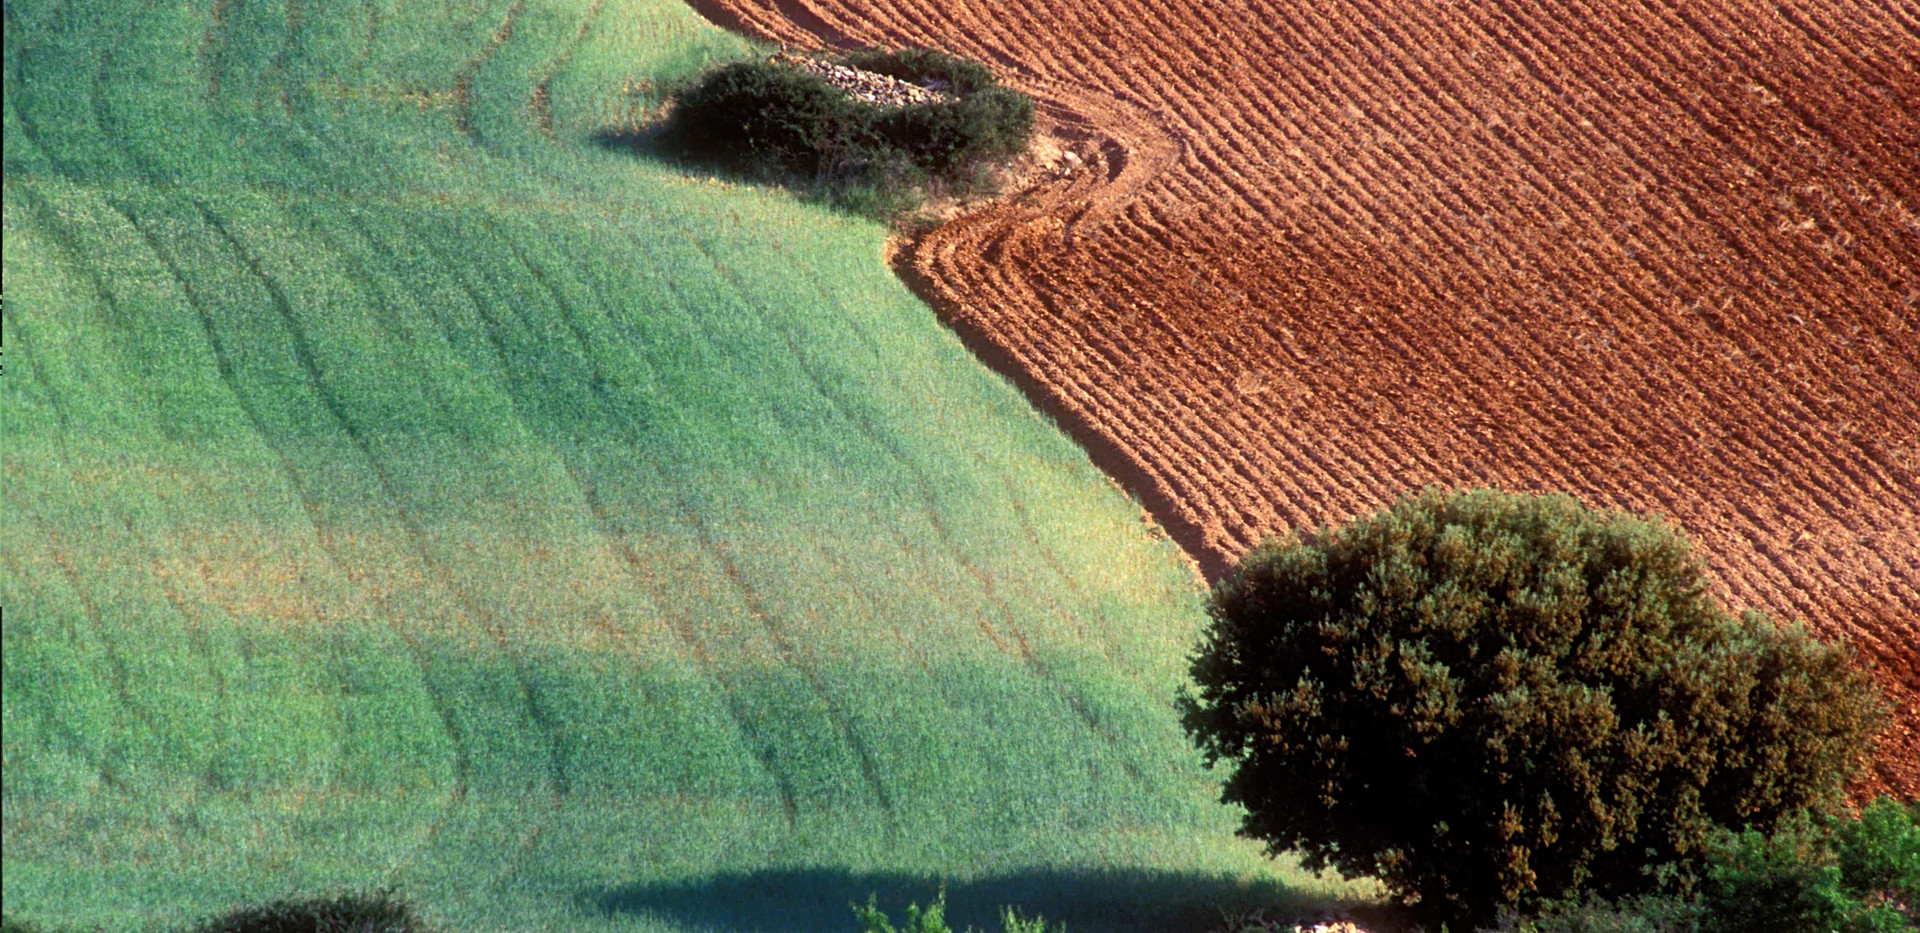 Campos rojos / Agricultural fields